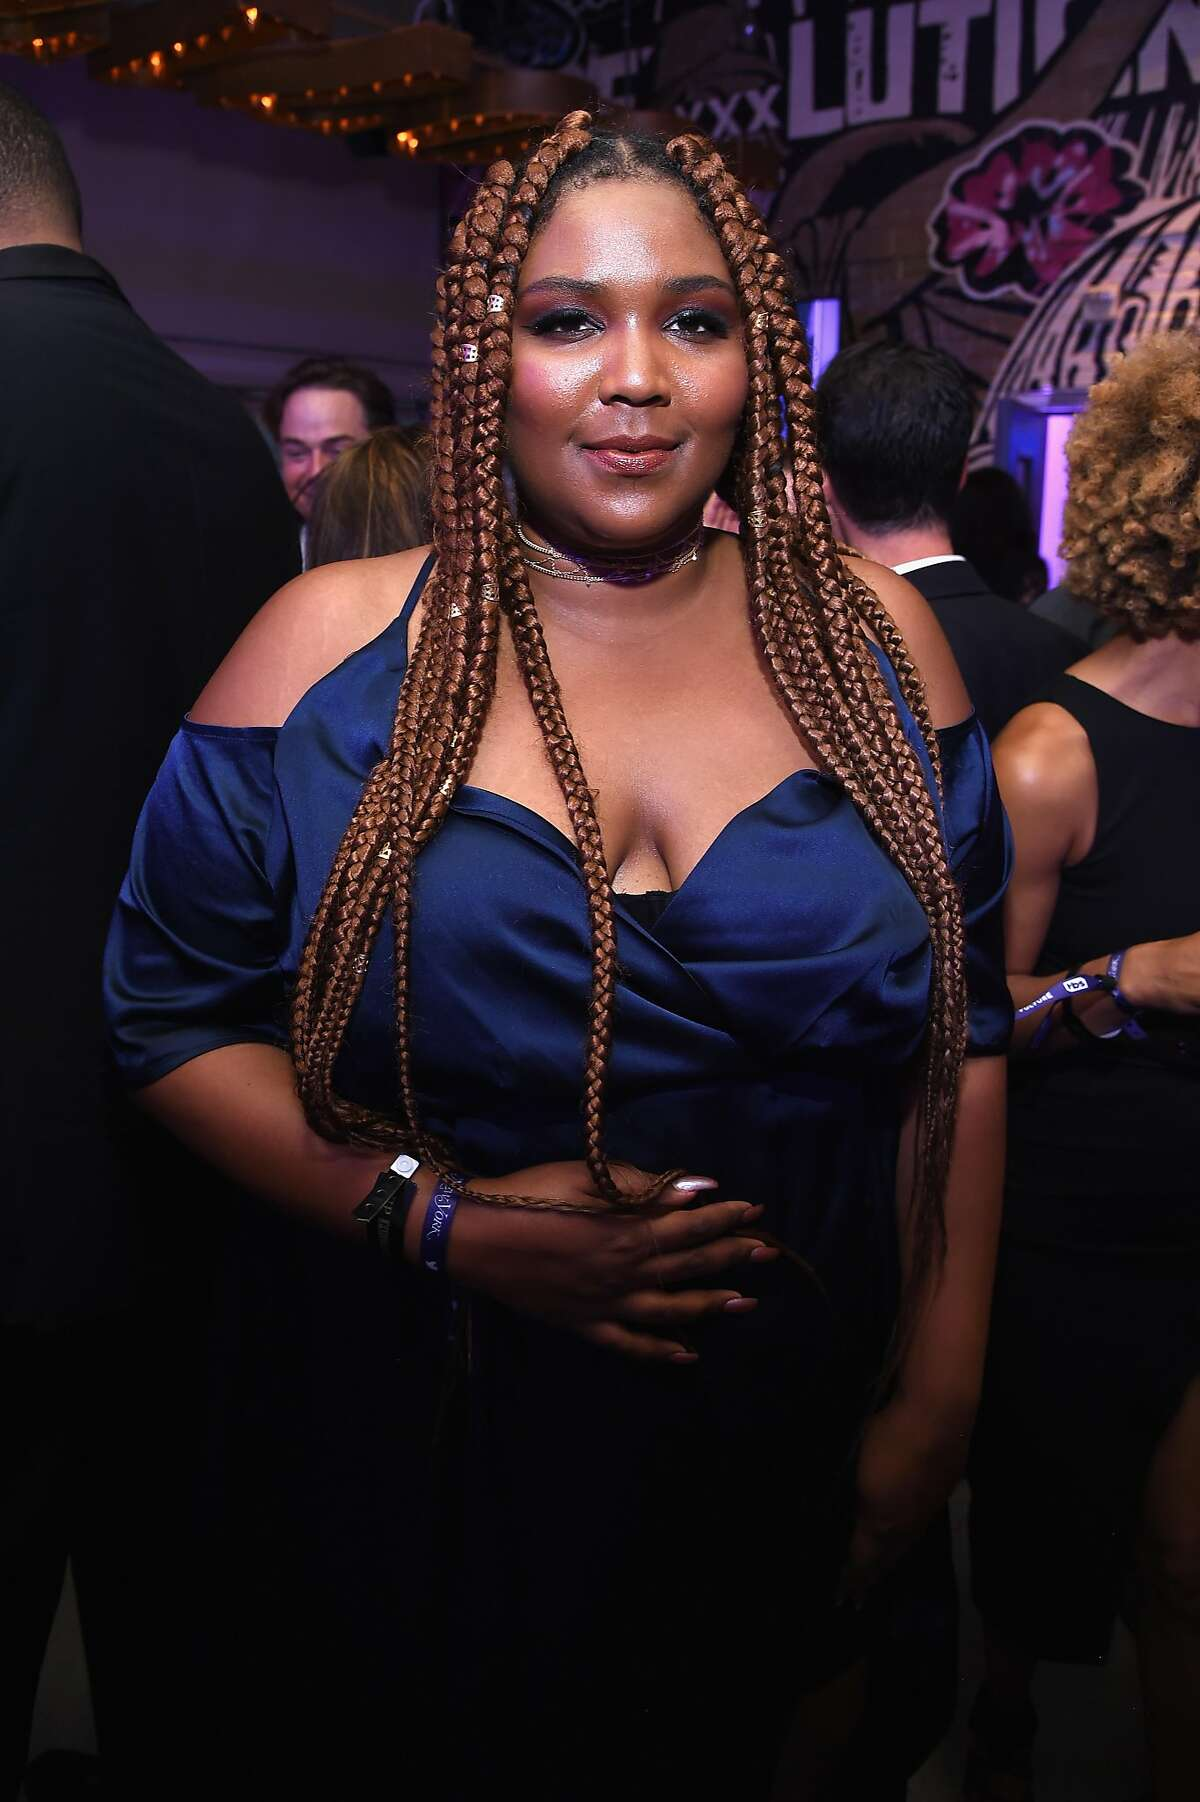 WASHINGTON, DC - APRIL 29: Lizzo attends the Full Frontal With Samantha Bee's Not The White House Correspondents' Dinner After Party at the W Hotel POV Rooftop on April 29, 2017 in Washington, DC. (Photo by Dimitrios Kambouris/Getty Images for TBS)